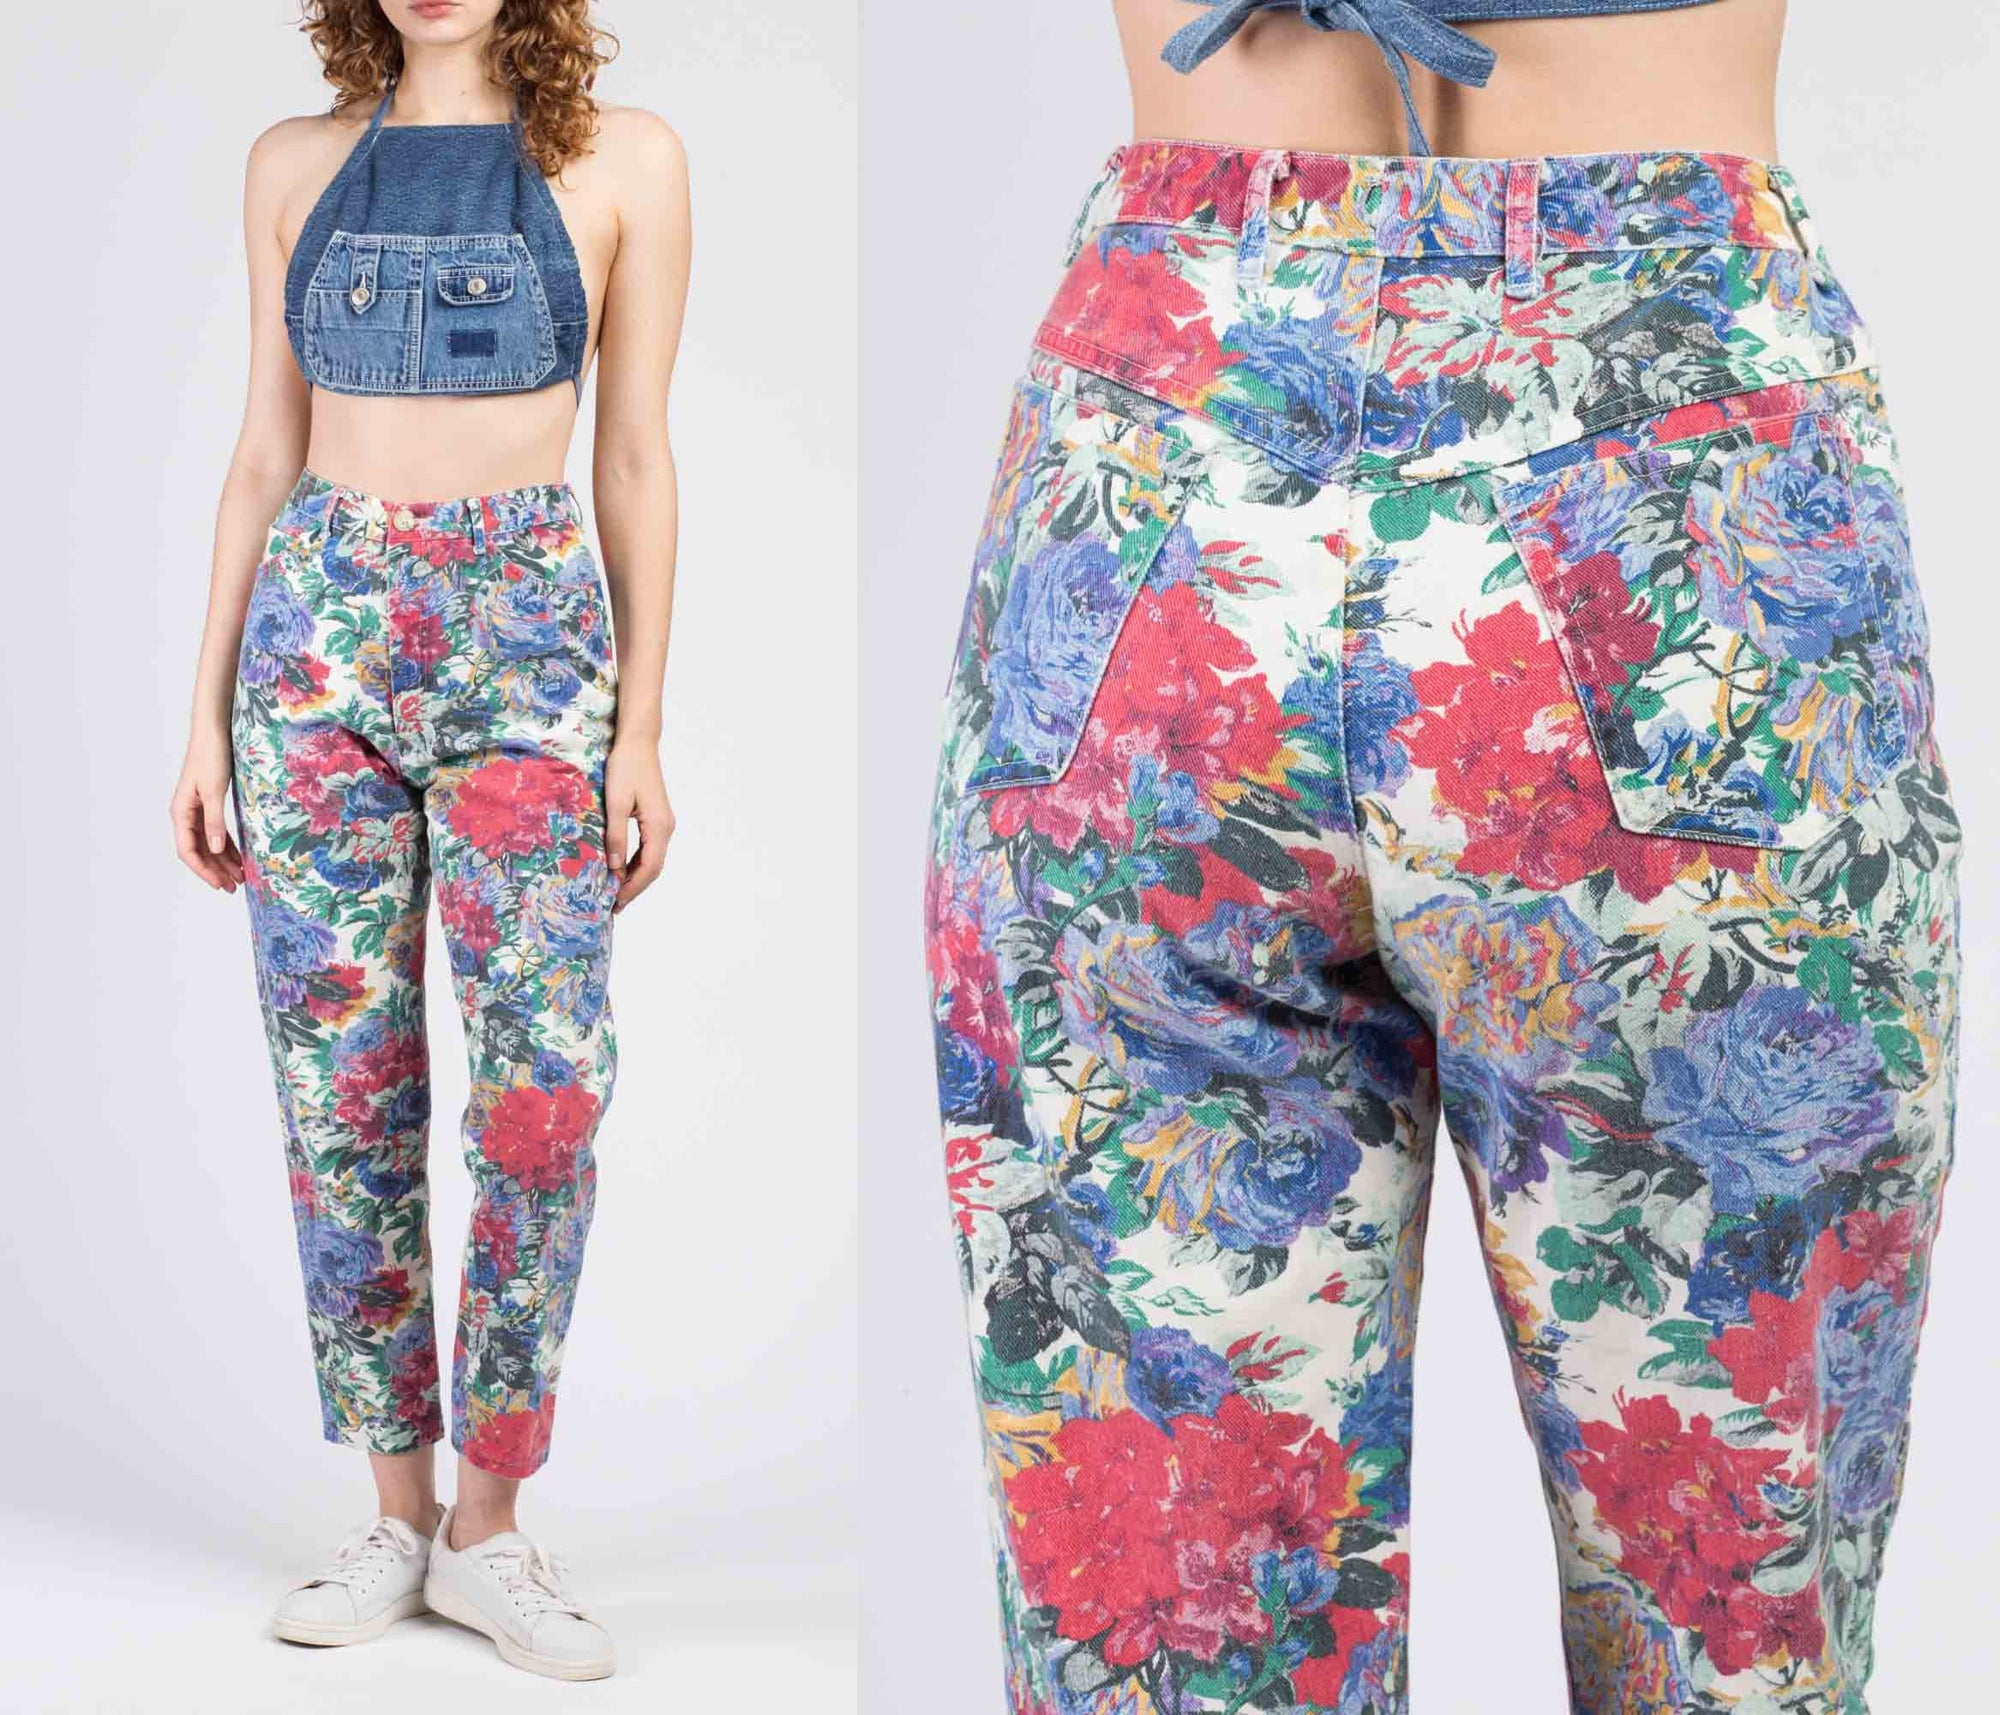 90s Colorful Floral Denim Jeans - Small